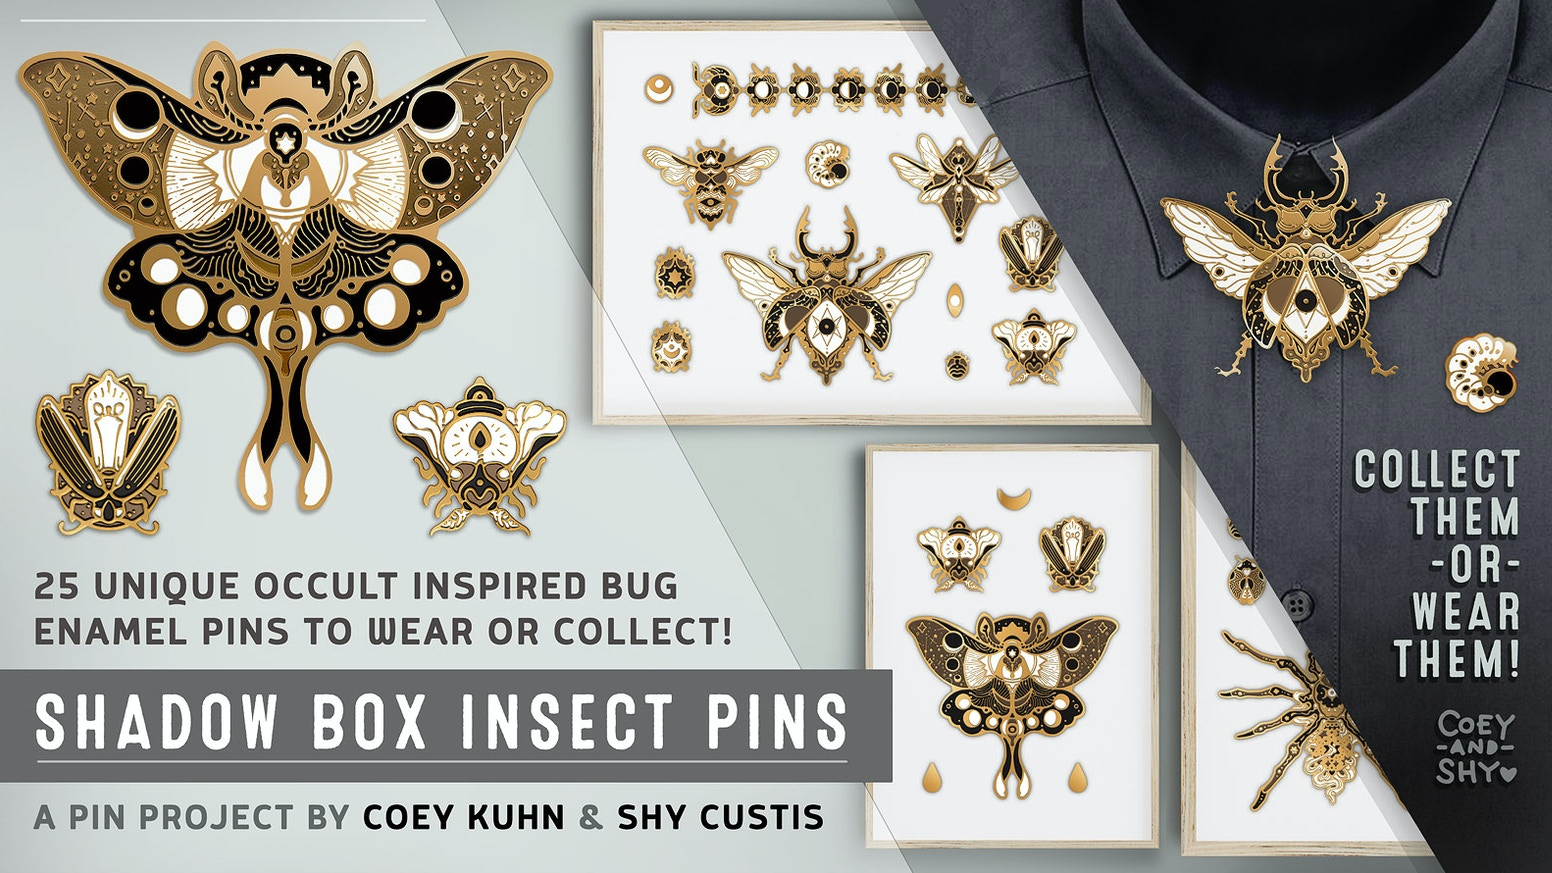 An fantastical series of occult-inspired insect pins, suitable for wear or framing.